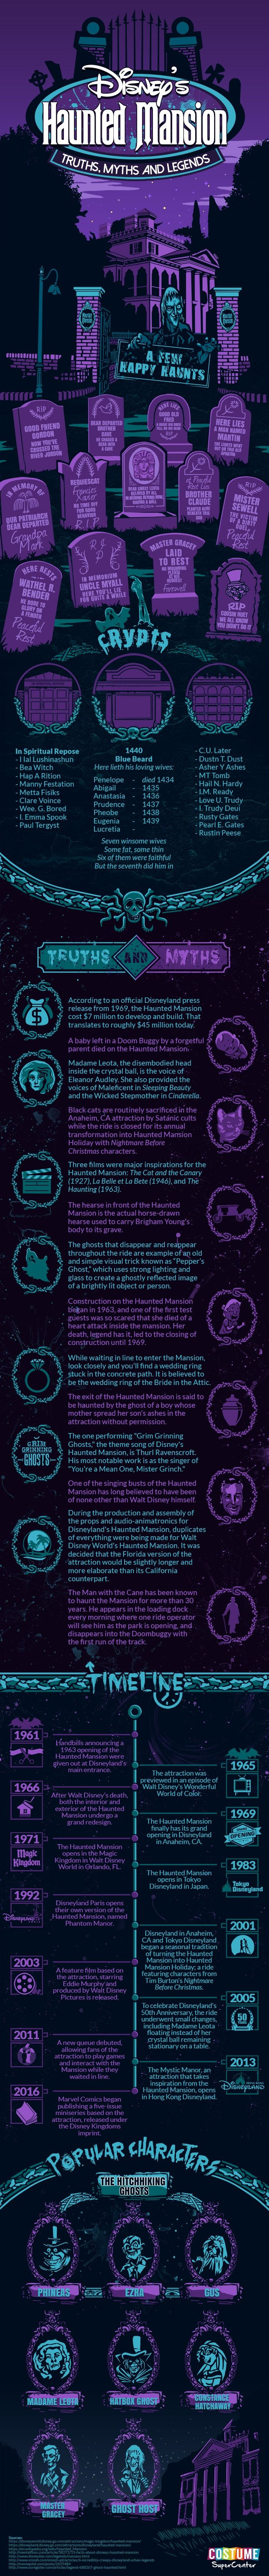 We're exploring the truths, myths & legends surrounding Disney's Haunted Mansion!